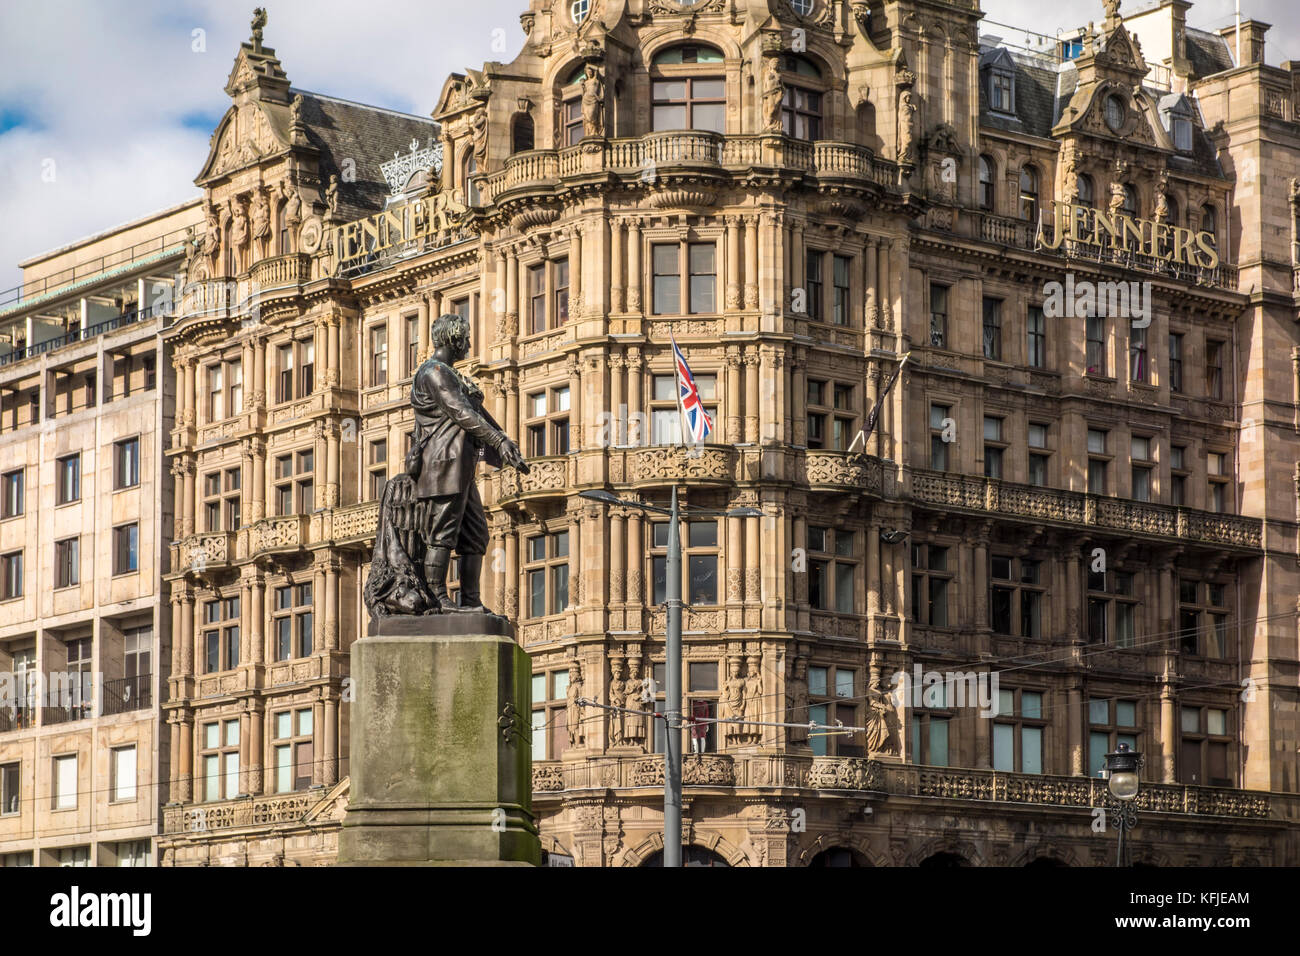 David Livingstone statue by Amelia Robertson Hill with Jenners department store in the background. Edinburgh, Scotland, - Stock Image